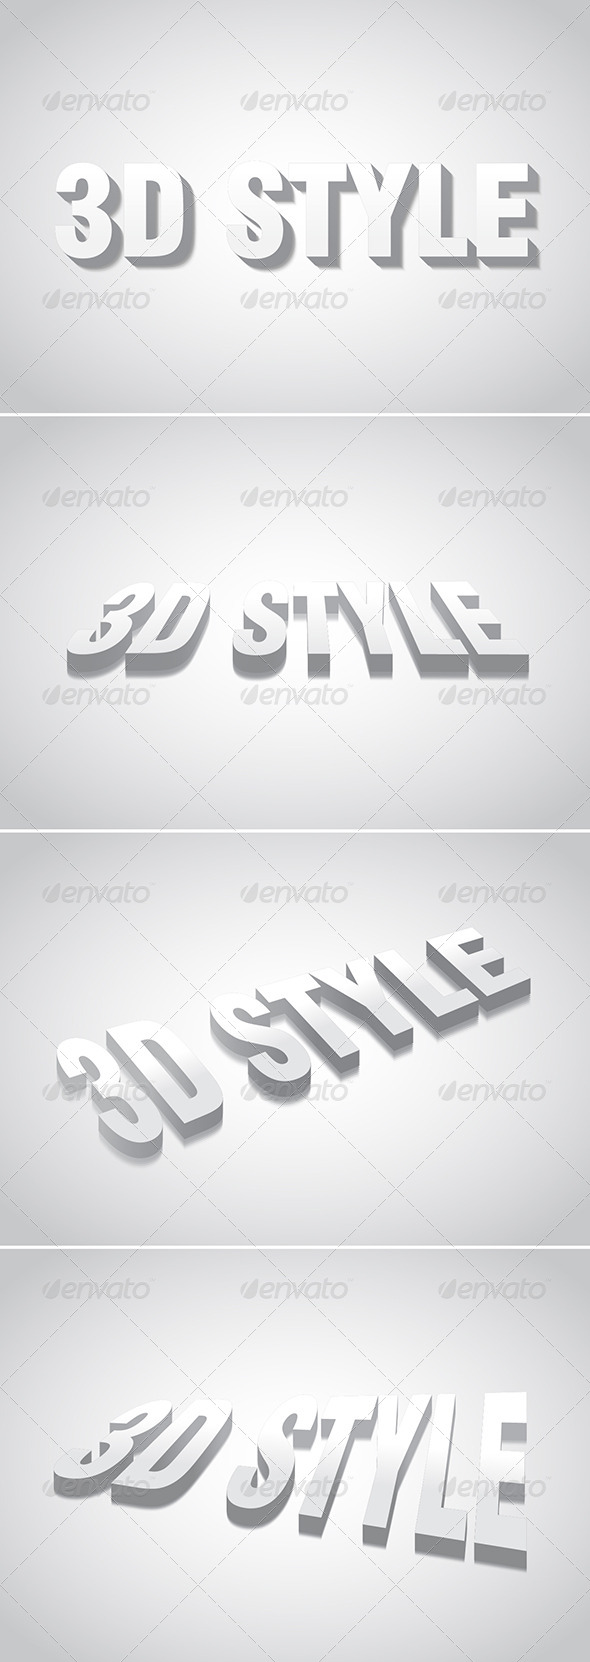 GraphicRiver 3D Graphic Style 8585328